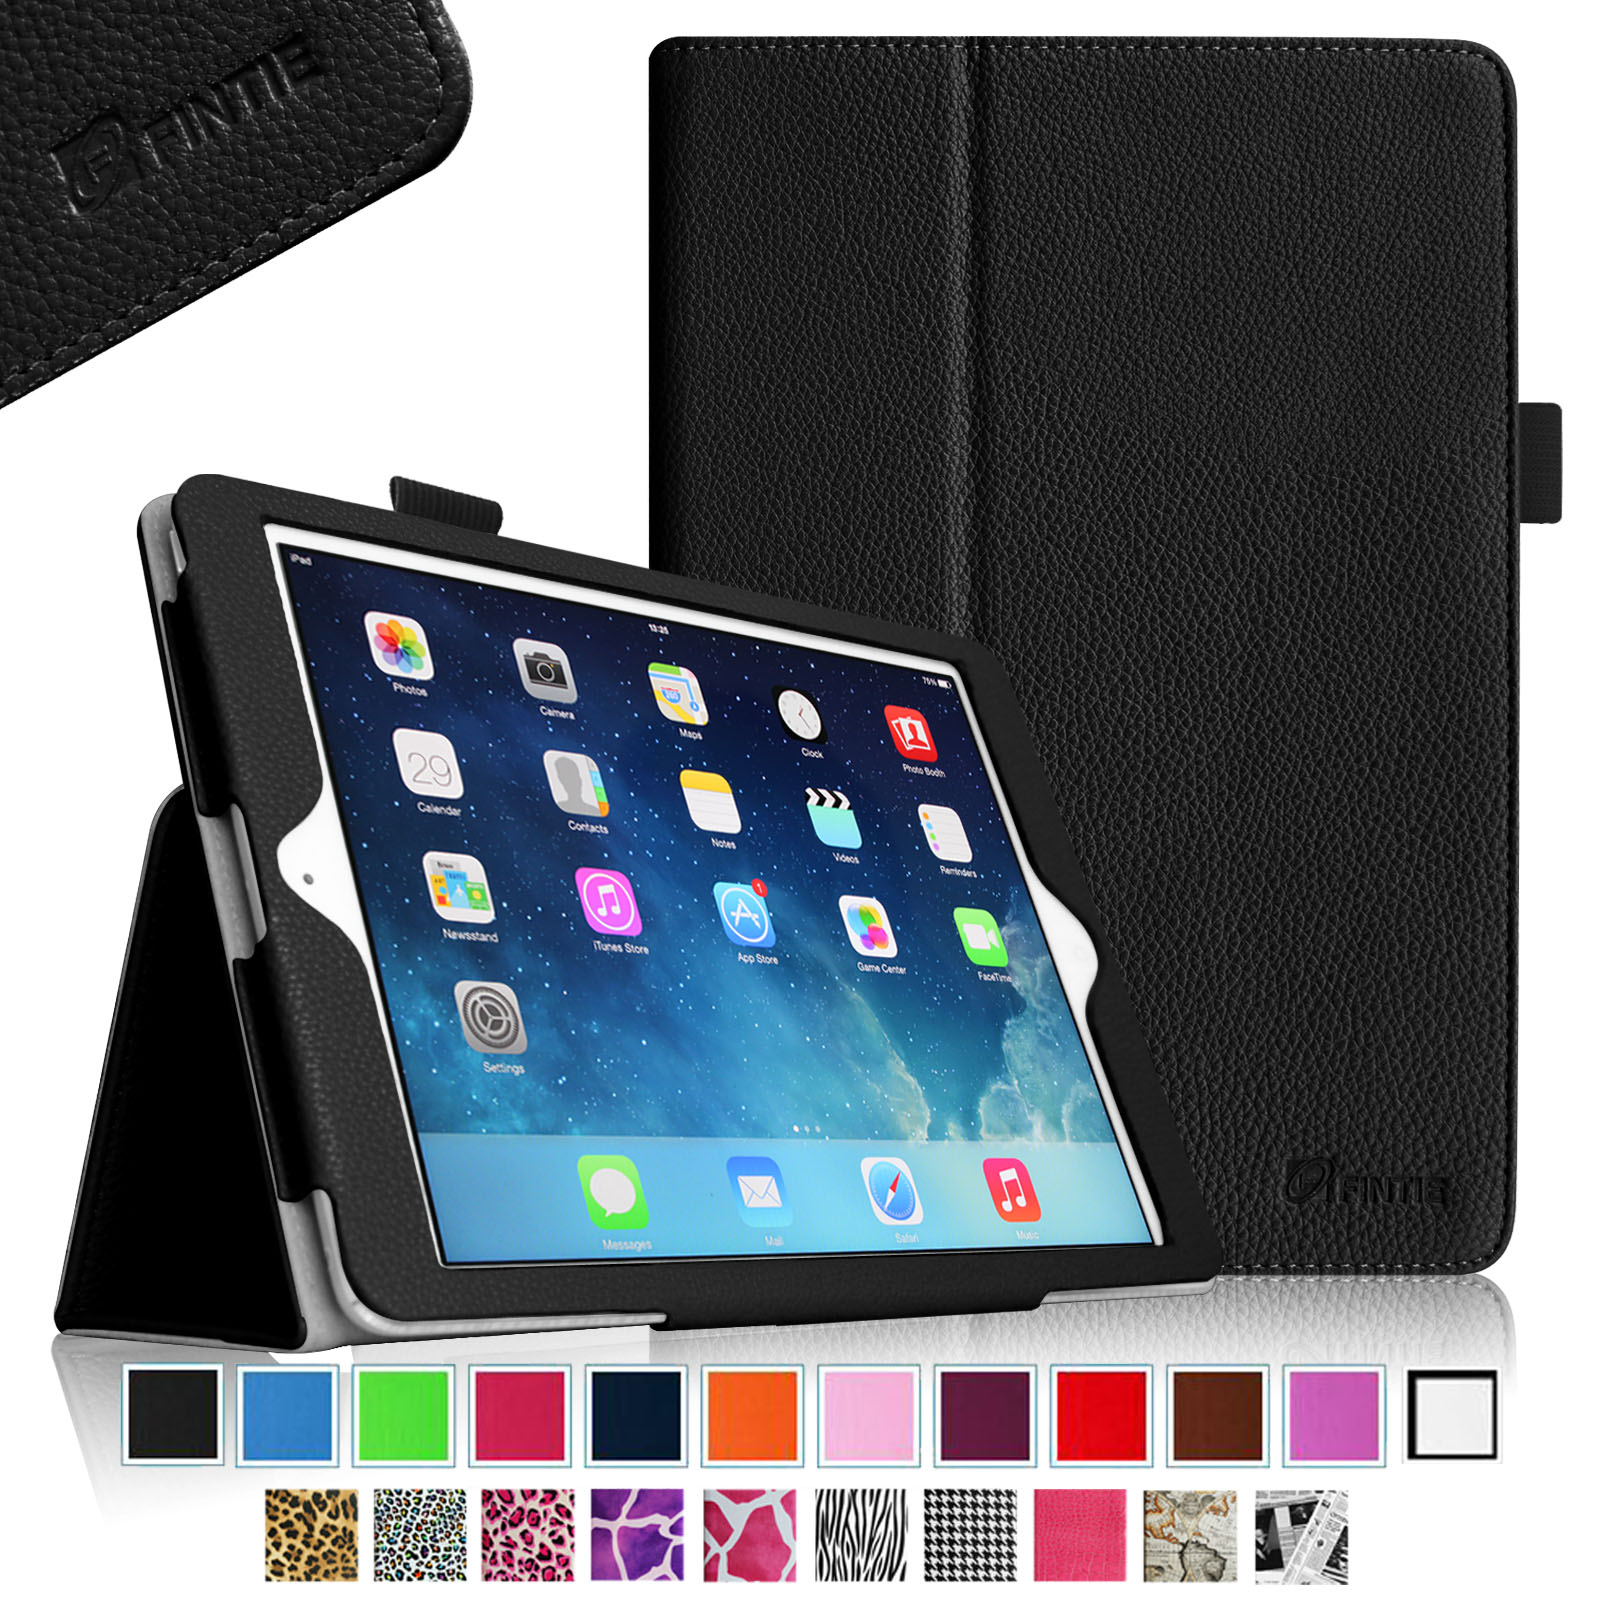 Fintie iPad Air (2013) Case - Premium PU Leather Folio Cover with Auto Sleep / Wake Feature, Black